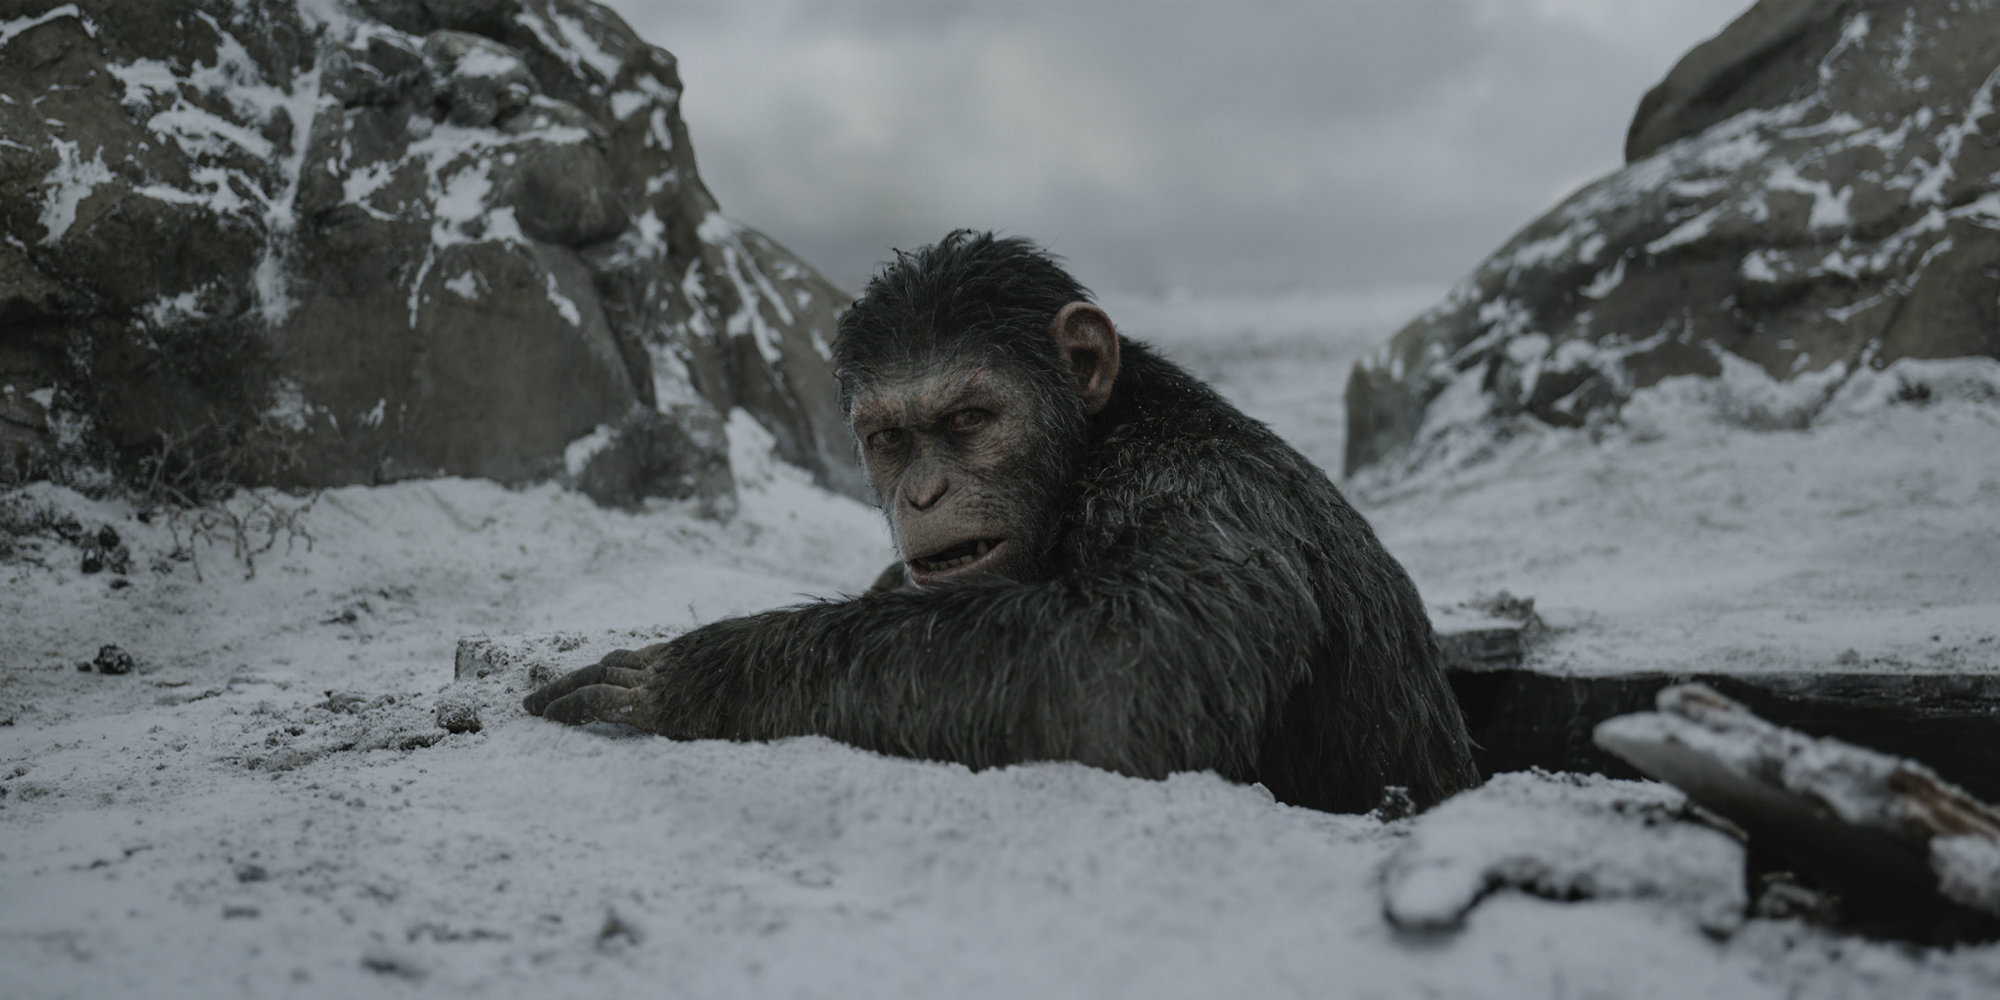 'War for the Planet of the Apes' is one of the best films you will see this year